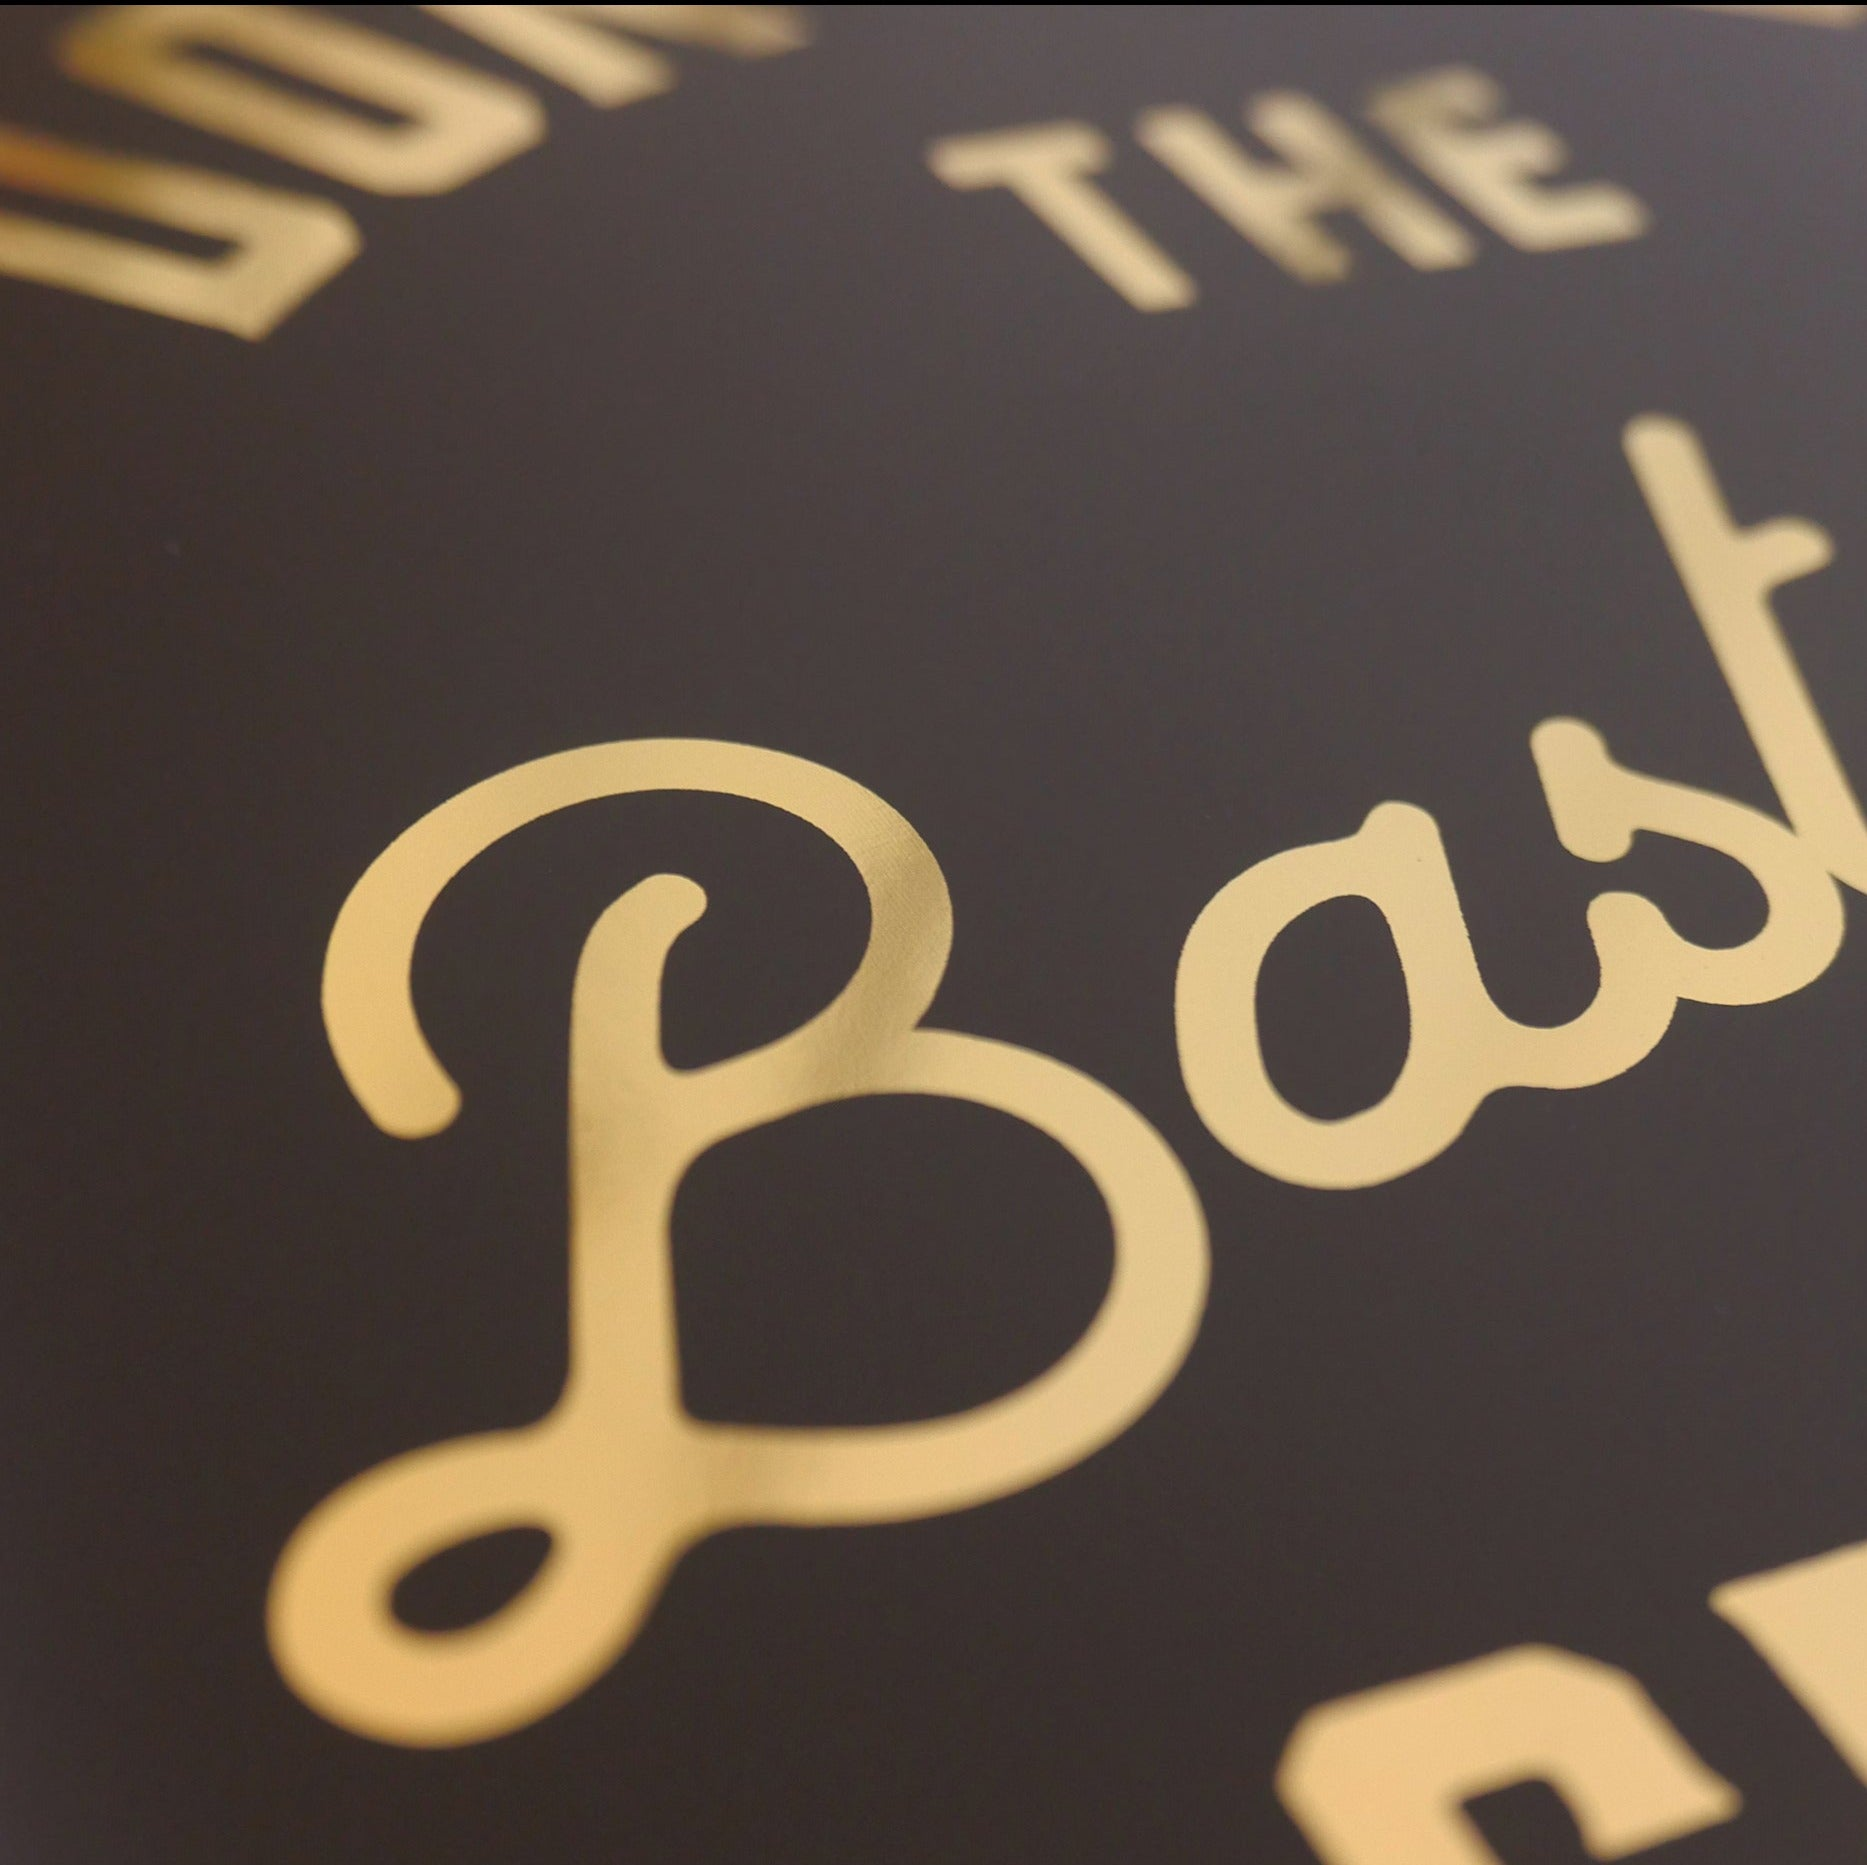 Don't Let The Bast**ds Get You Down - Gold foil print